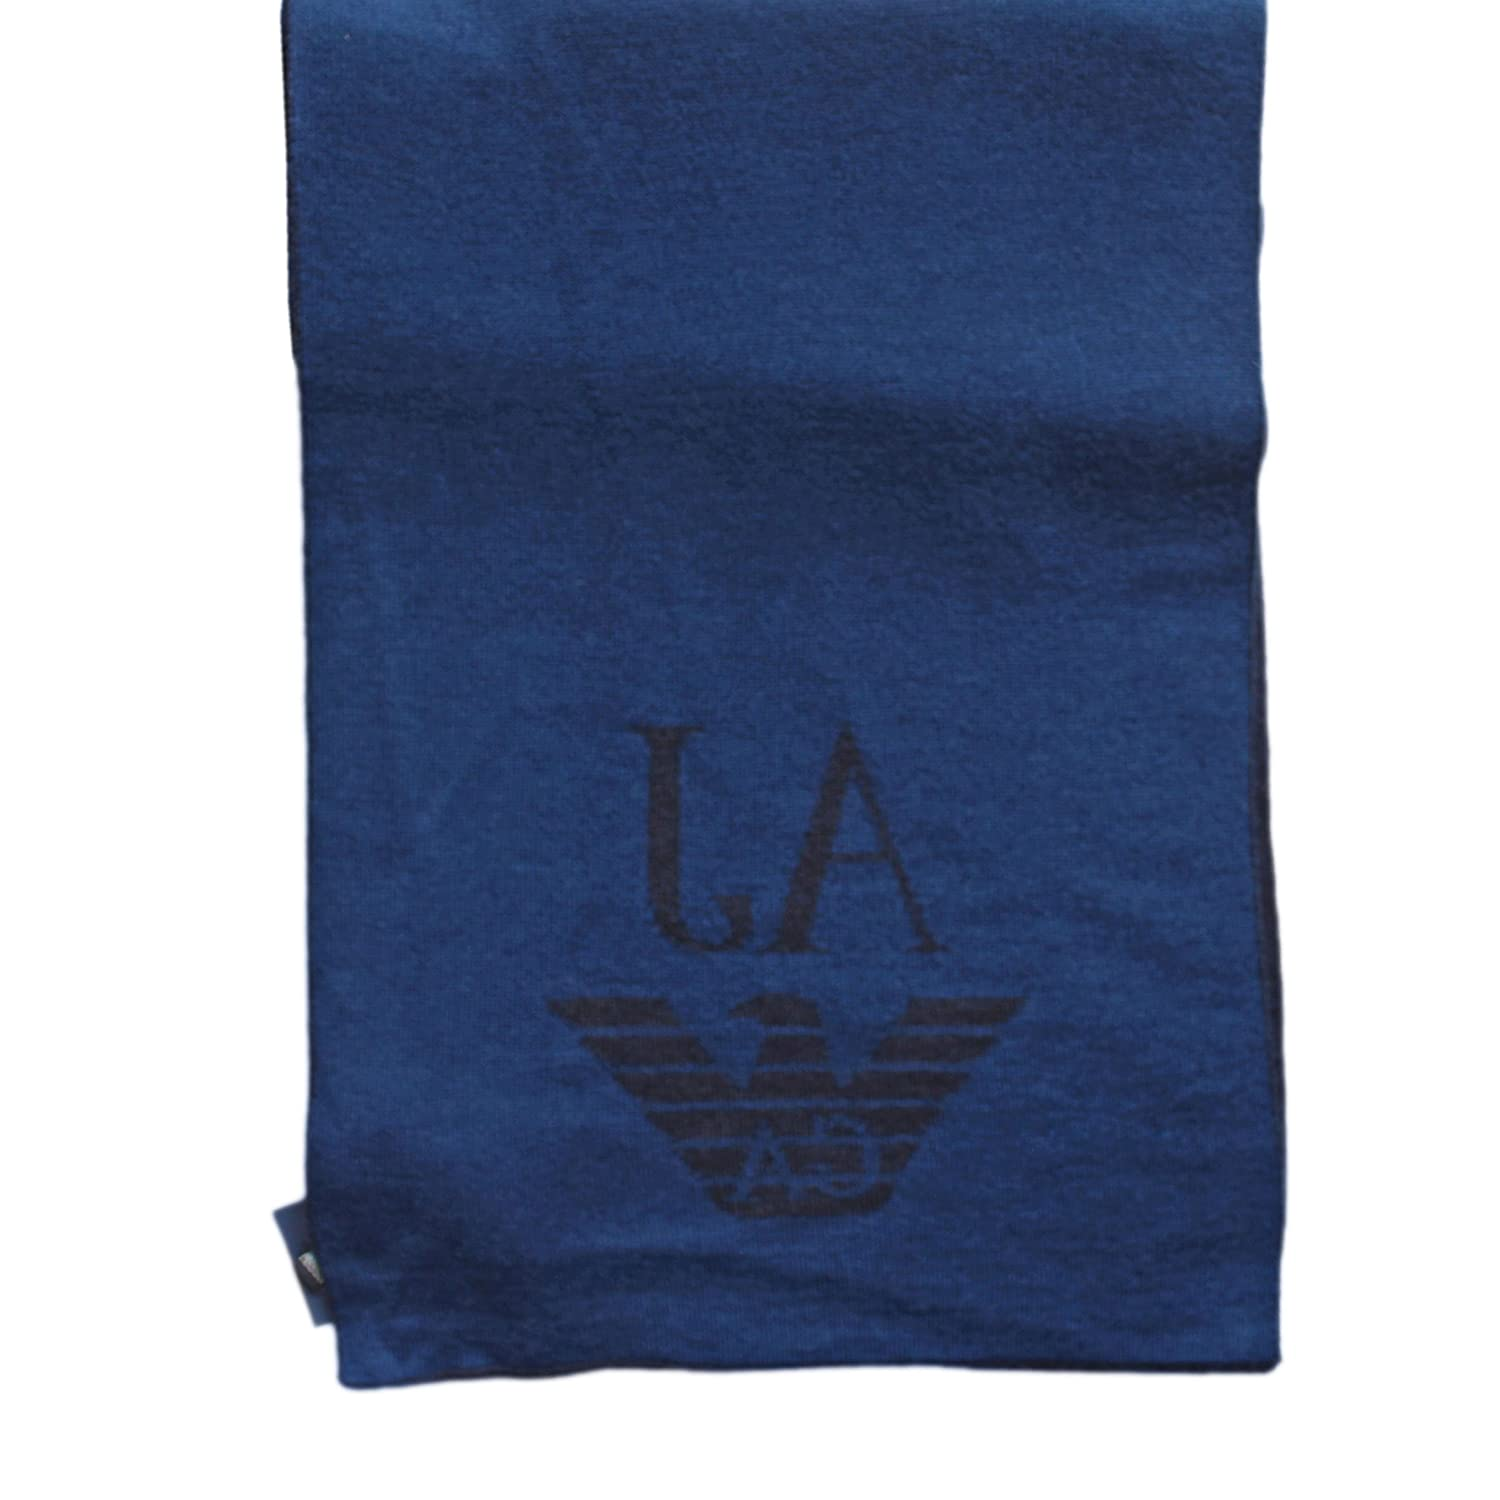 Armani Jeans Knitted Scarf/Beanie 'Sciarpa' Gift Set